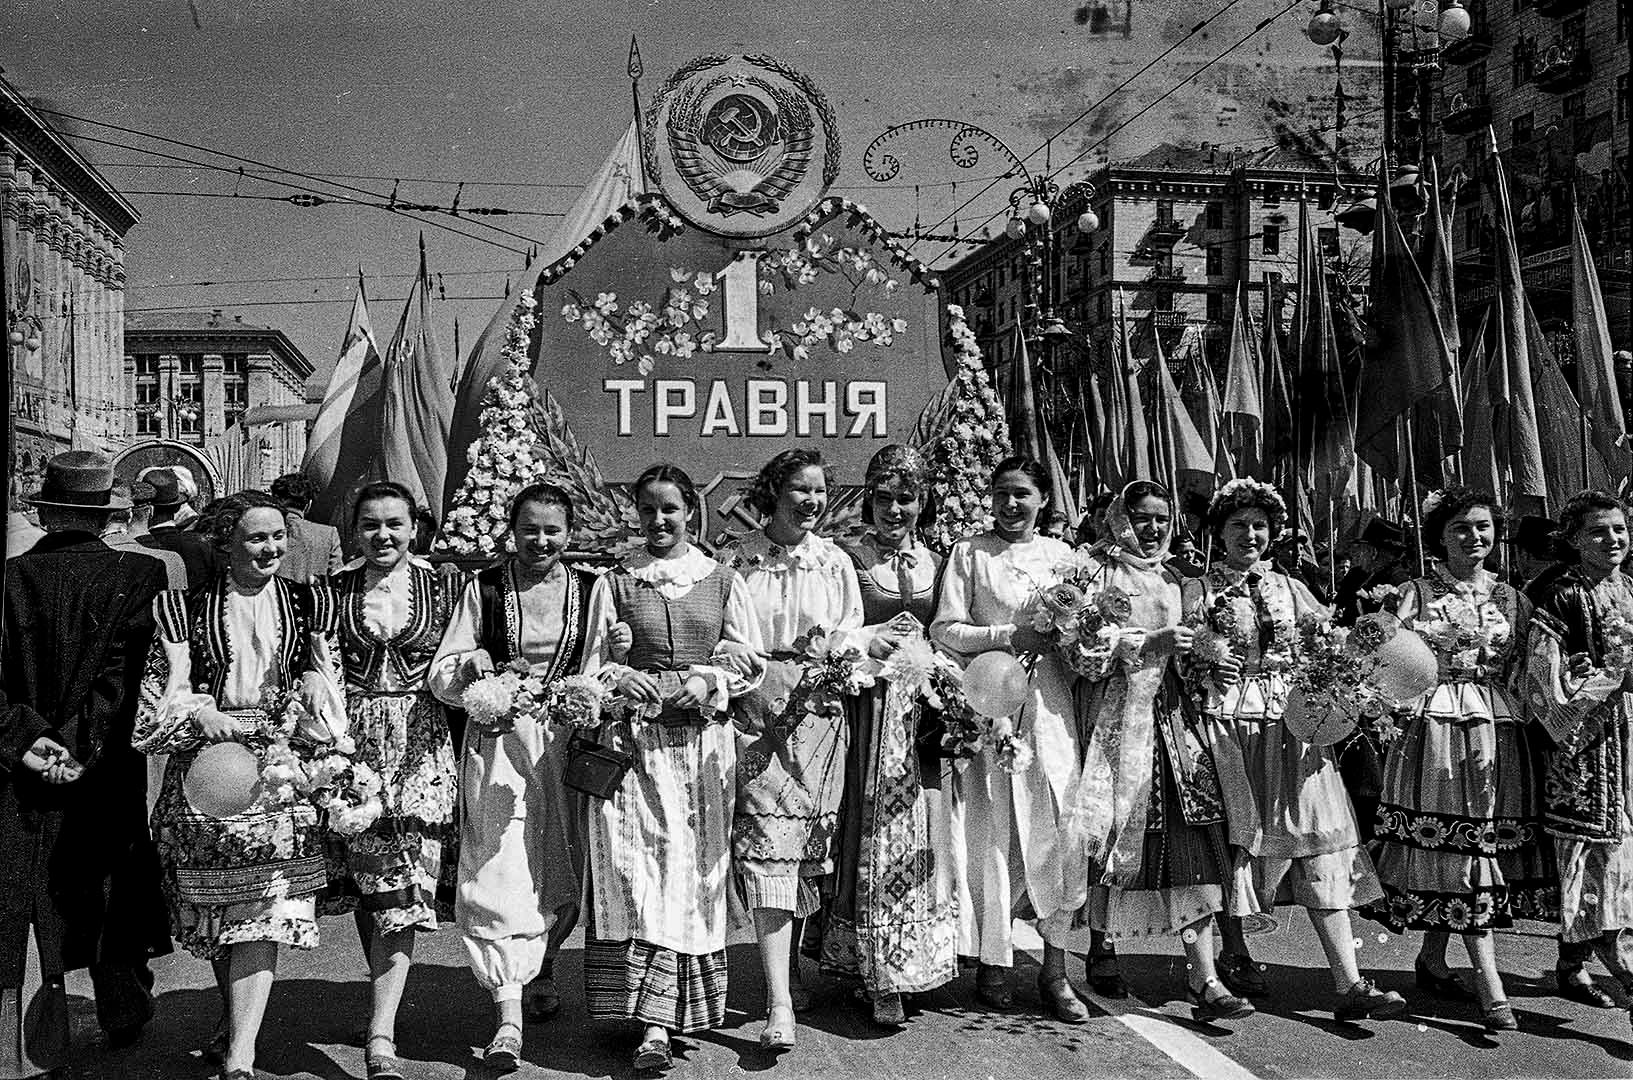 1958, Celebration of the Labour Day by Iryna Pap - SEE KYIV